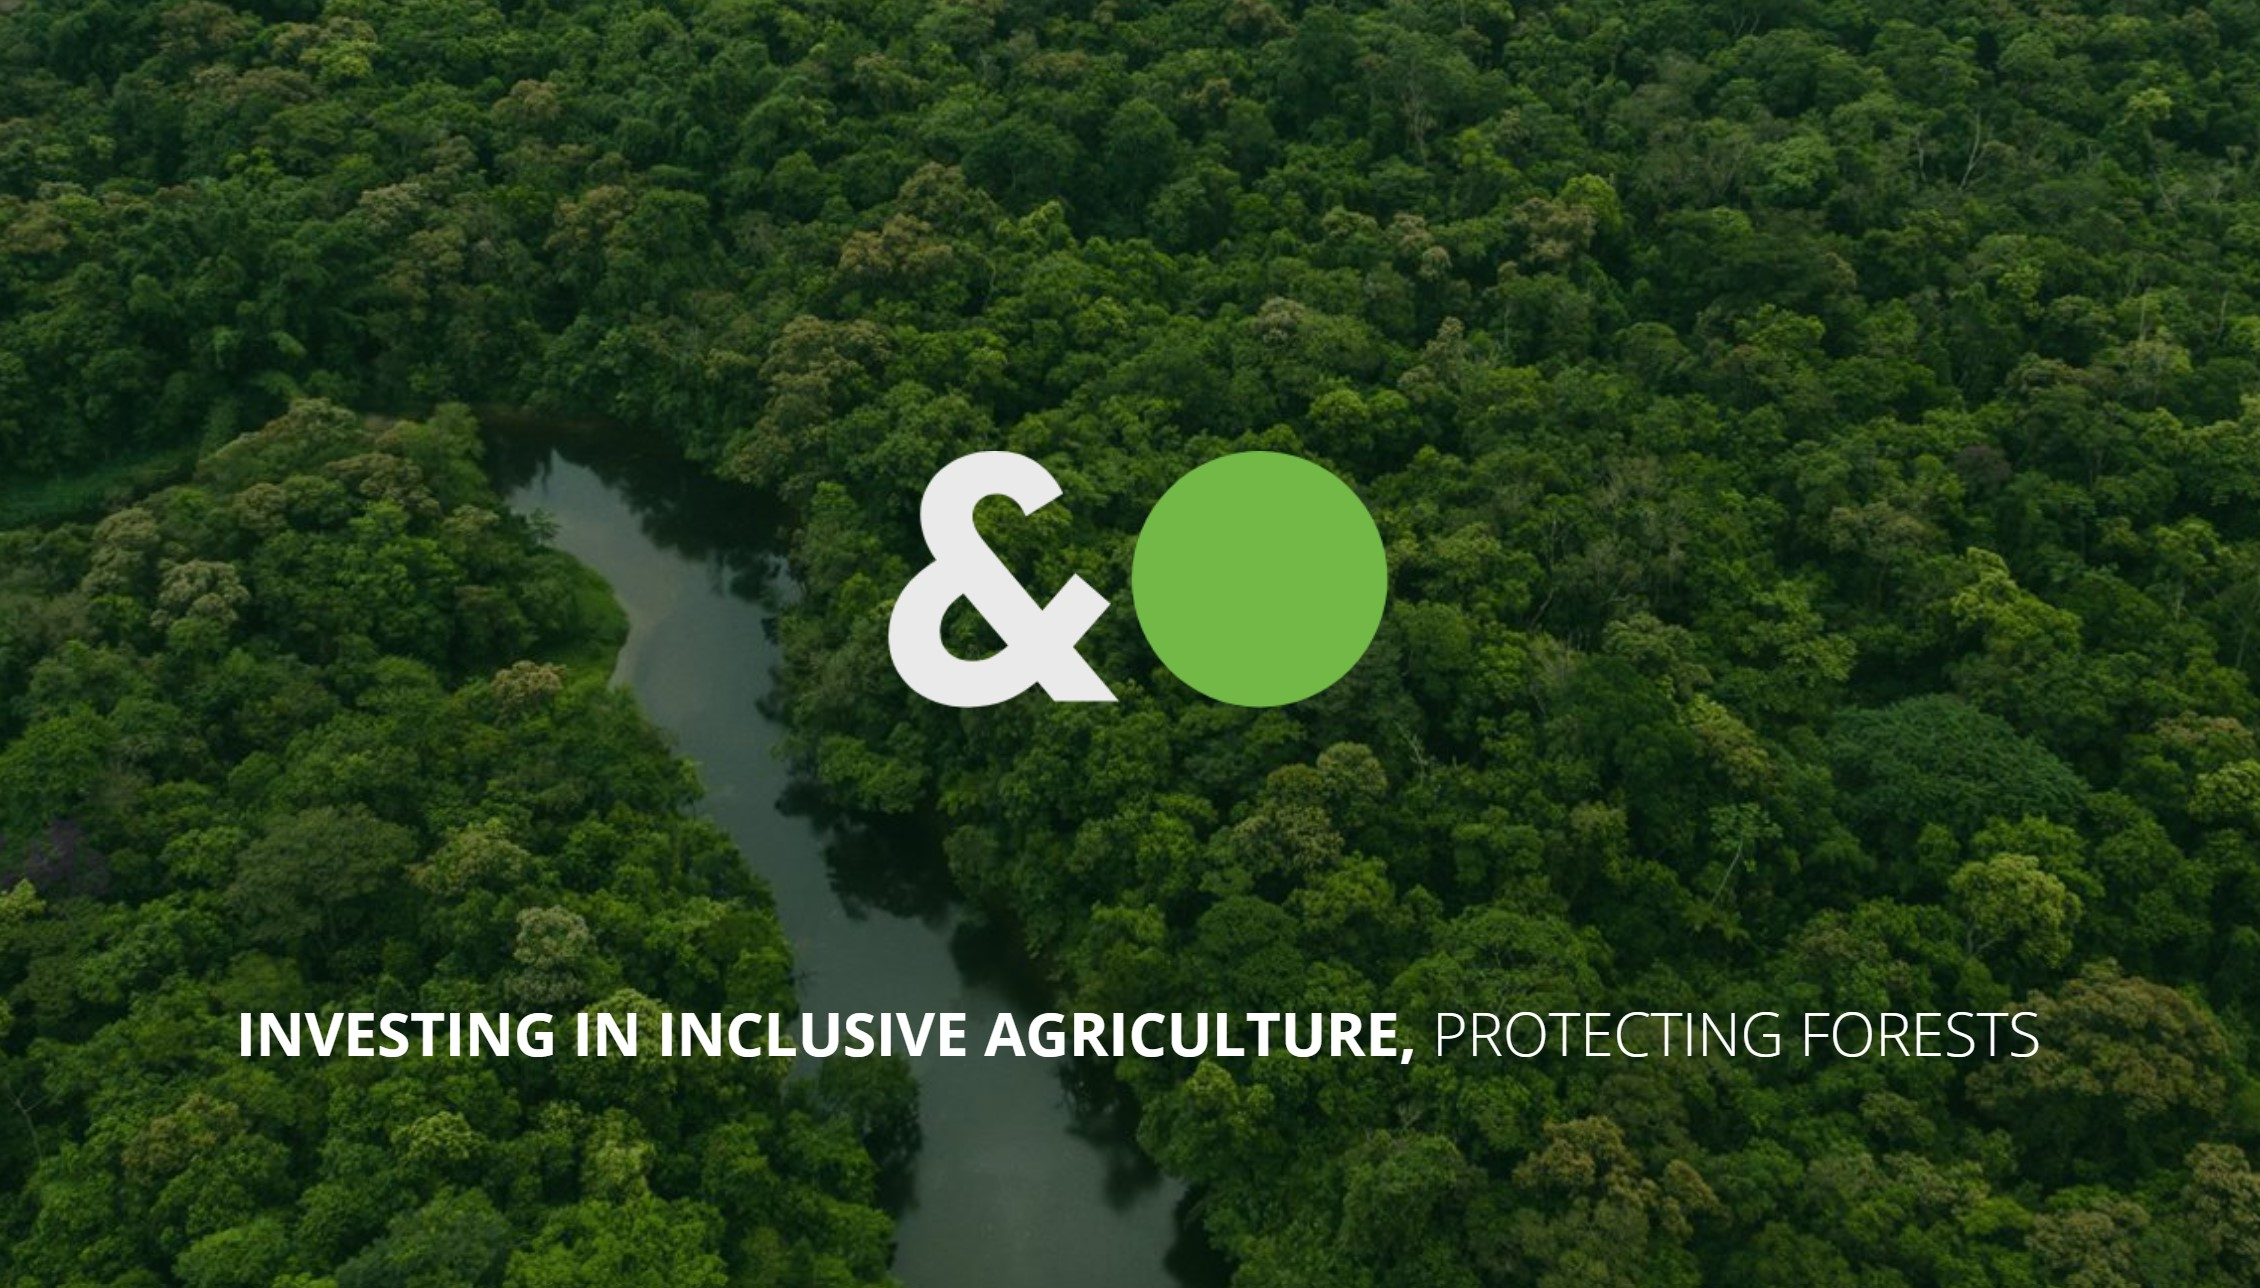 &Green Fund secures long-term funding from FMO to scale up the sustainable transformation of tropical commodity supply chains